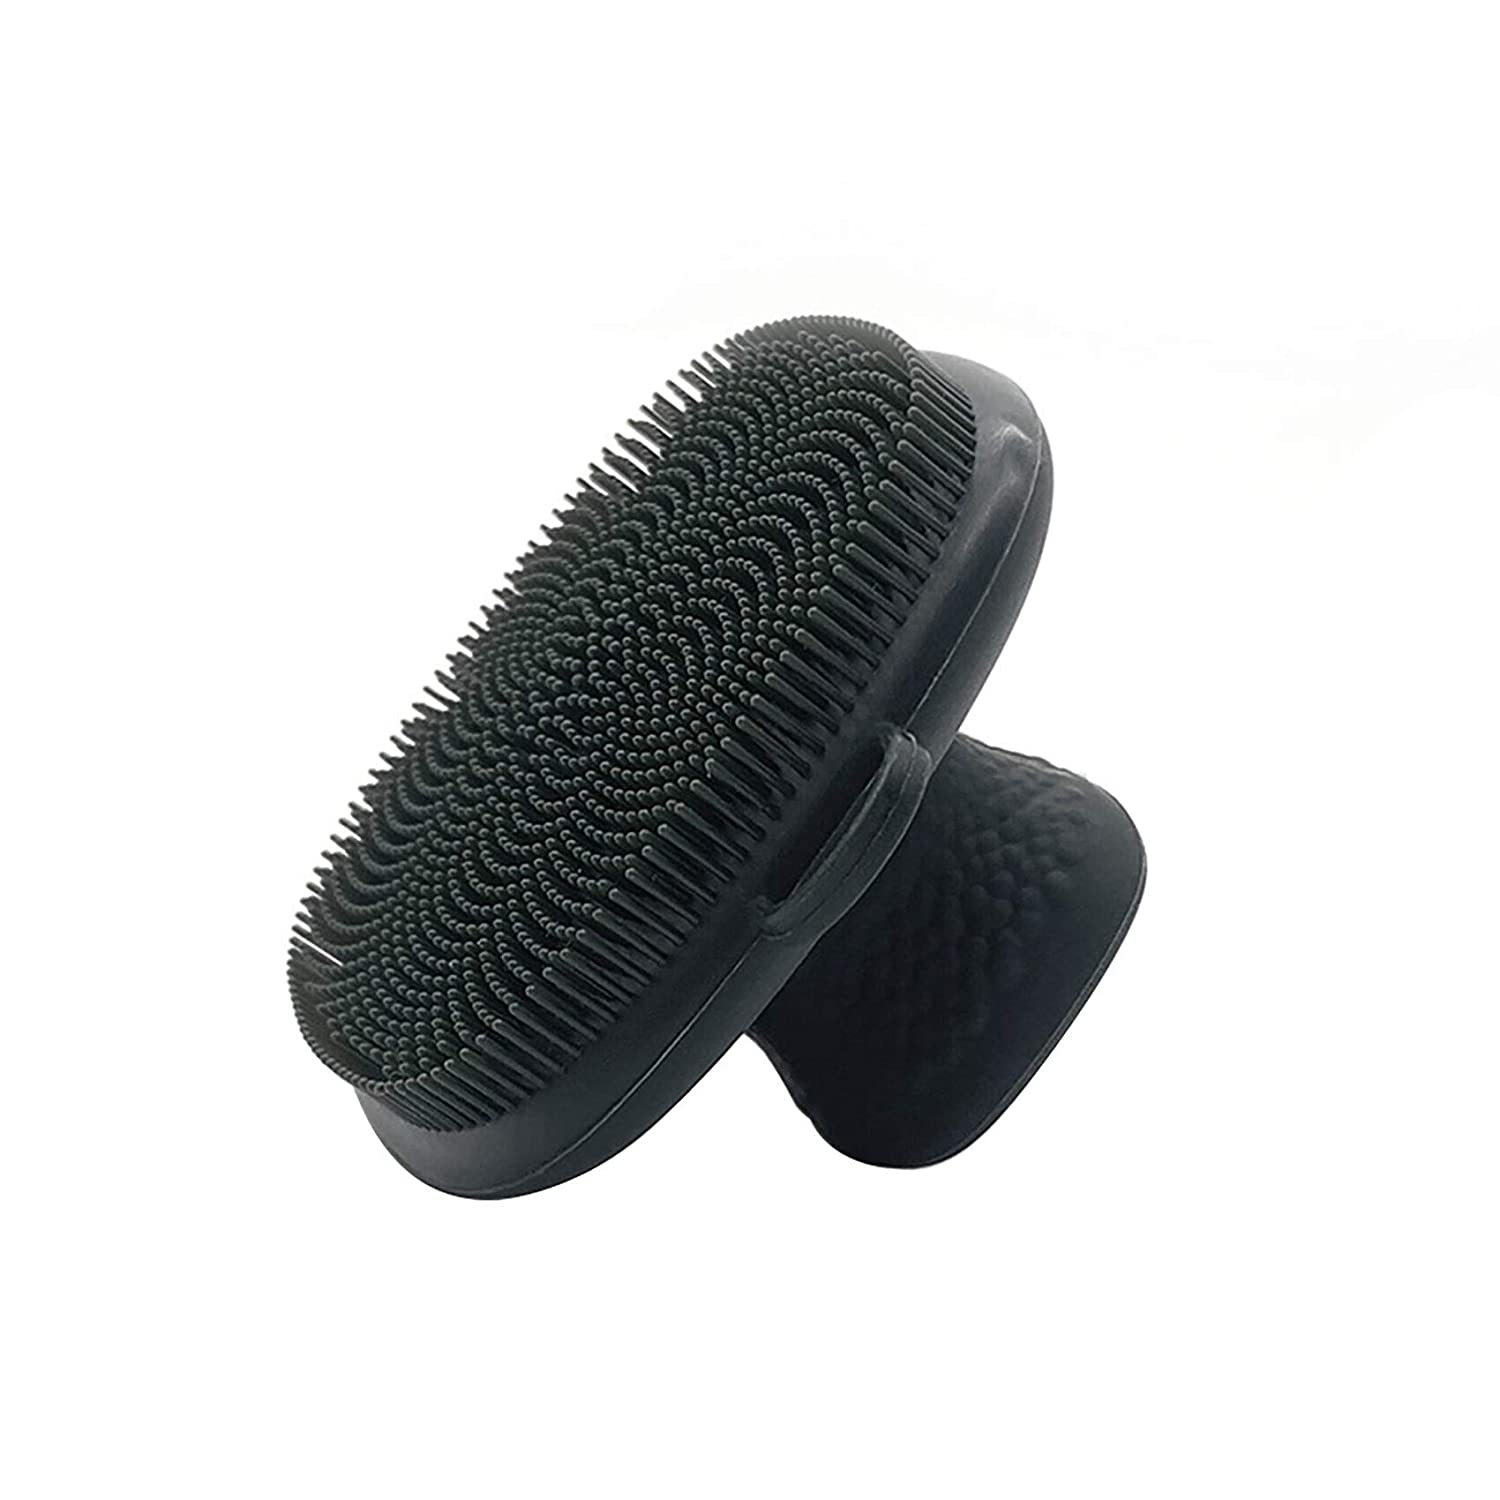 Facial Cleansing Brush Silicone, Ergonomic Design, Portable and Convenient,Cleansing Skin Care Face Brushes for Cleansing and Exfoliating (Black)